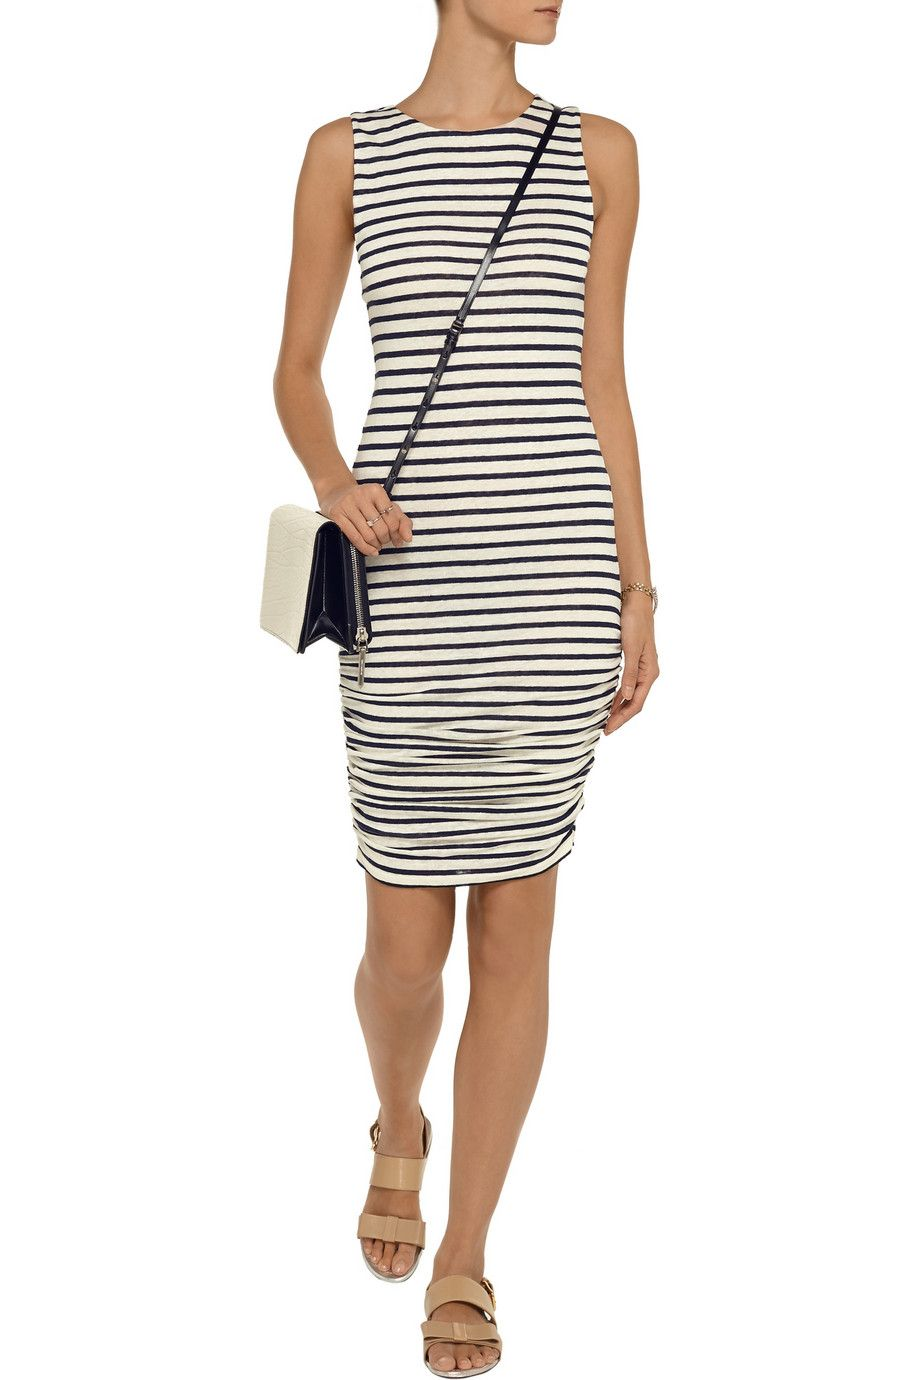 Alice + OliviaStriped linen dress